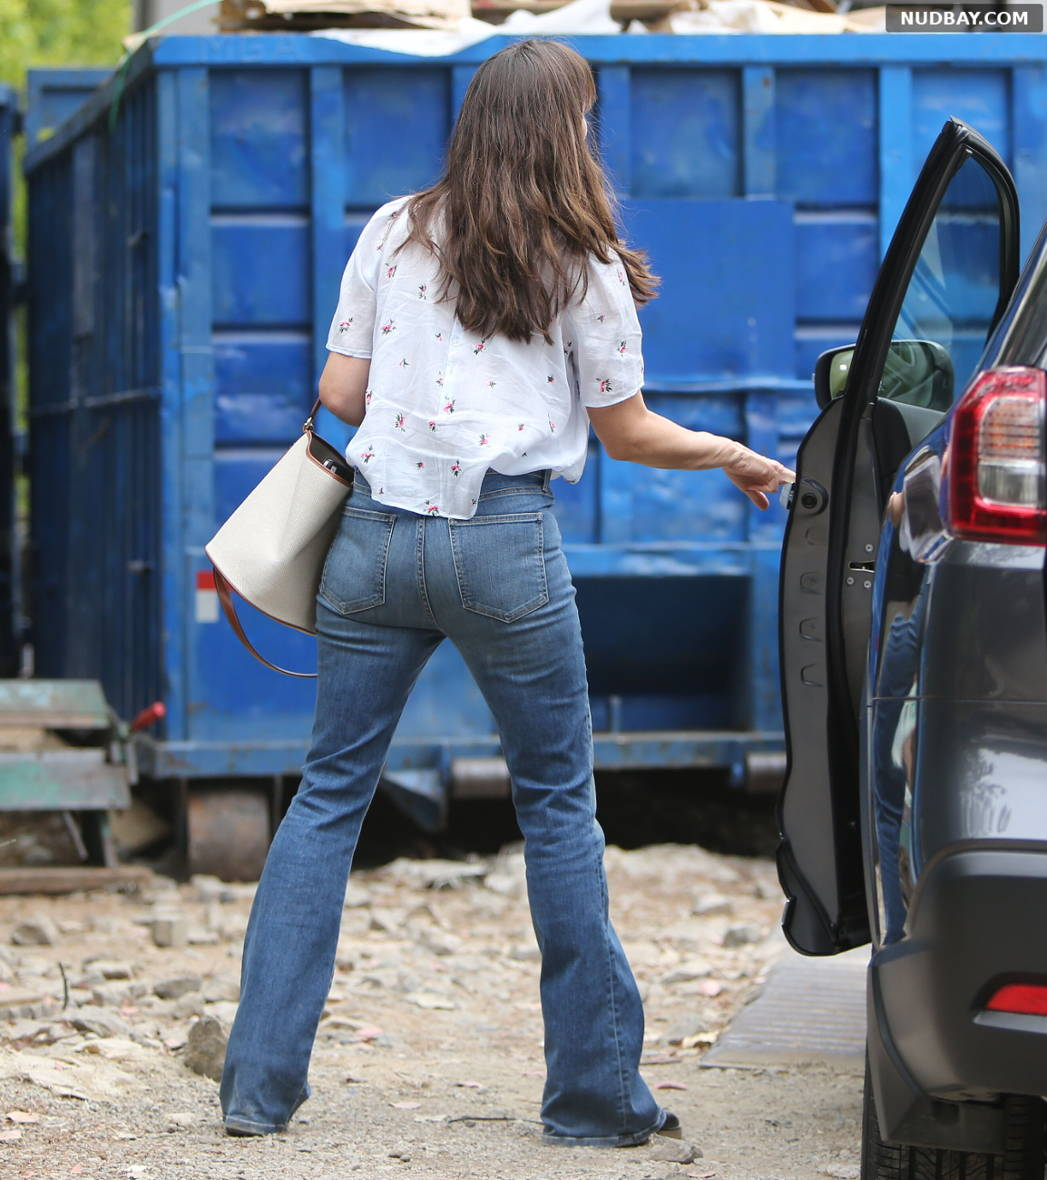 Jennifer Garner Booty out in Brentwood May 17 2021